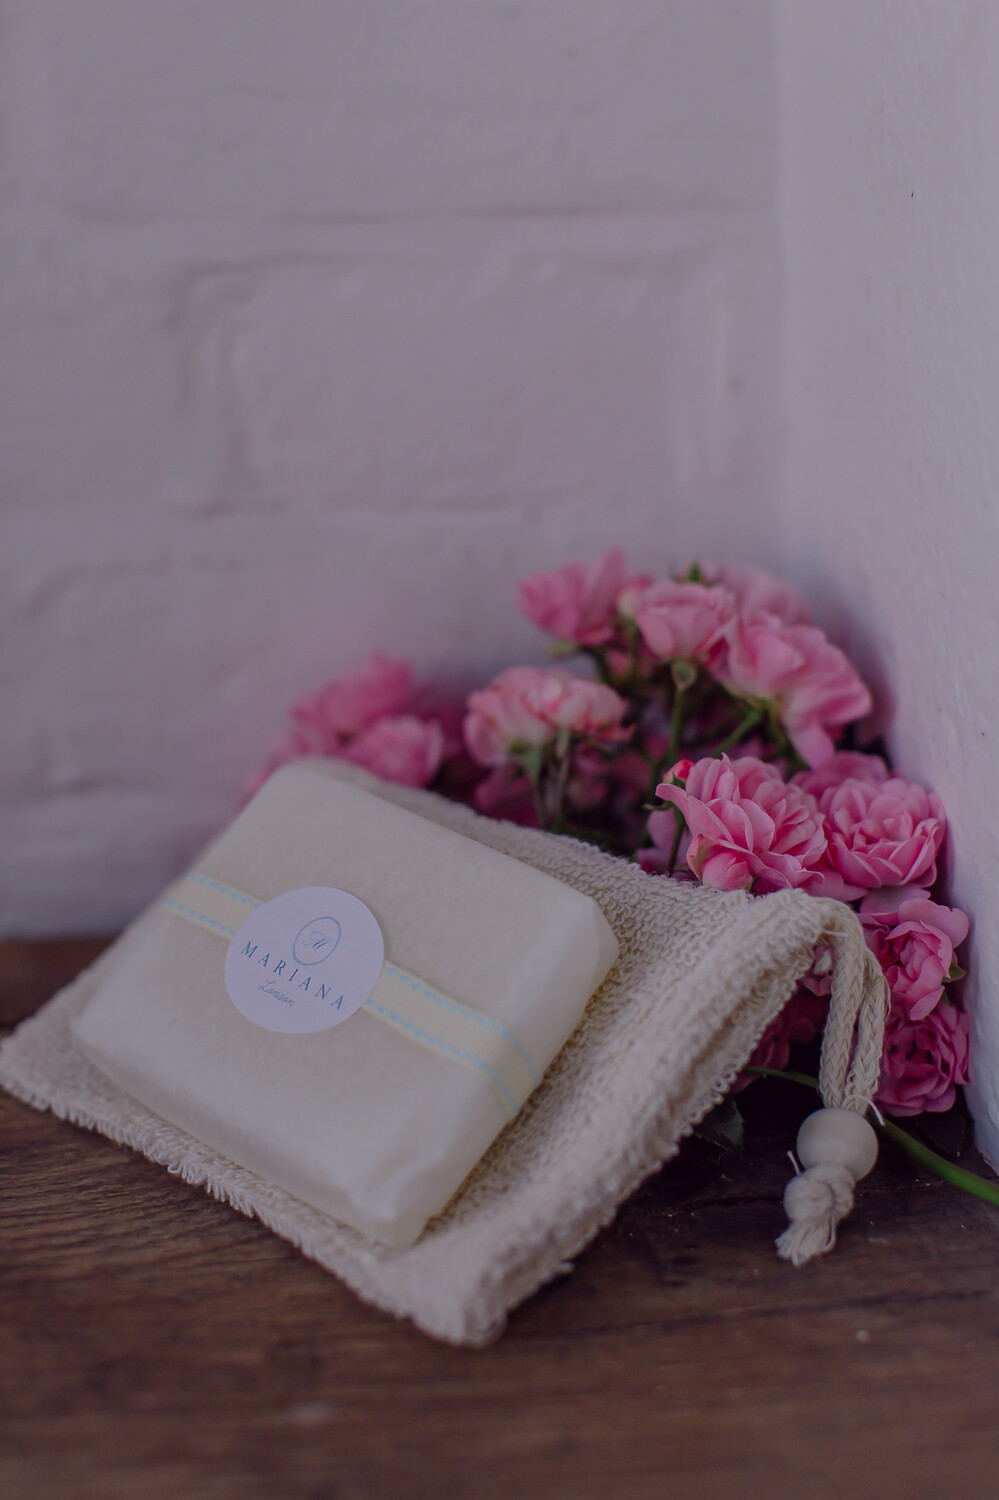 Rose Geranium and Bergamot Shower Soap